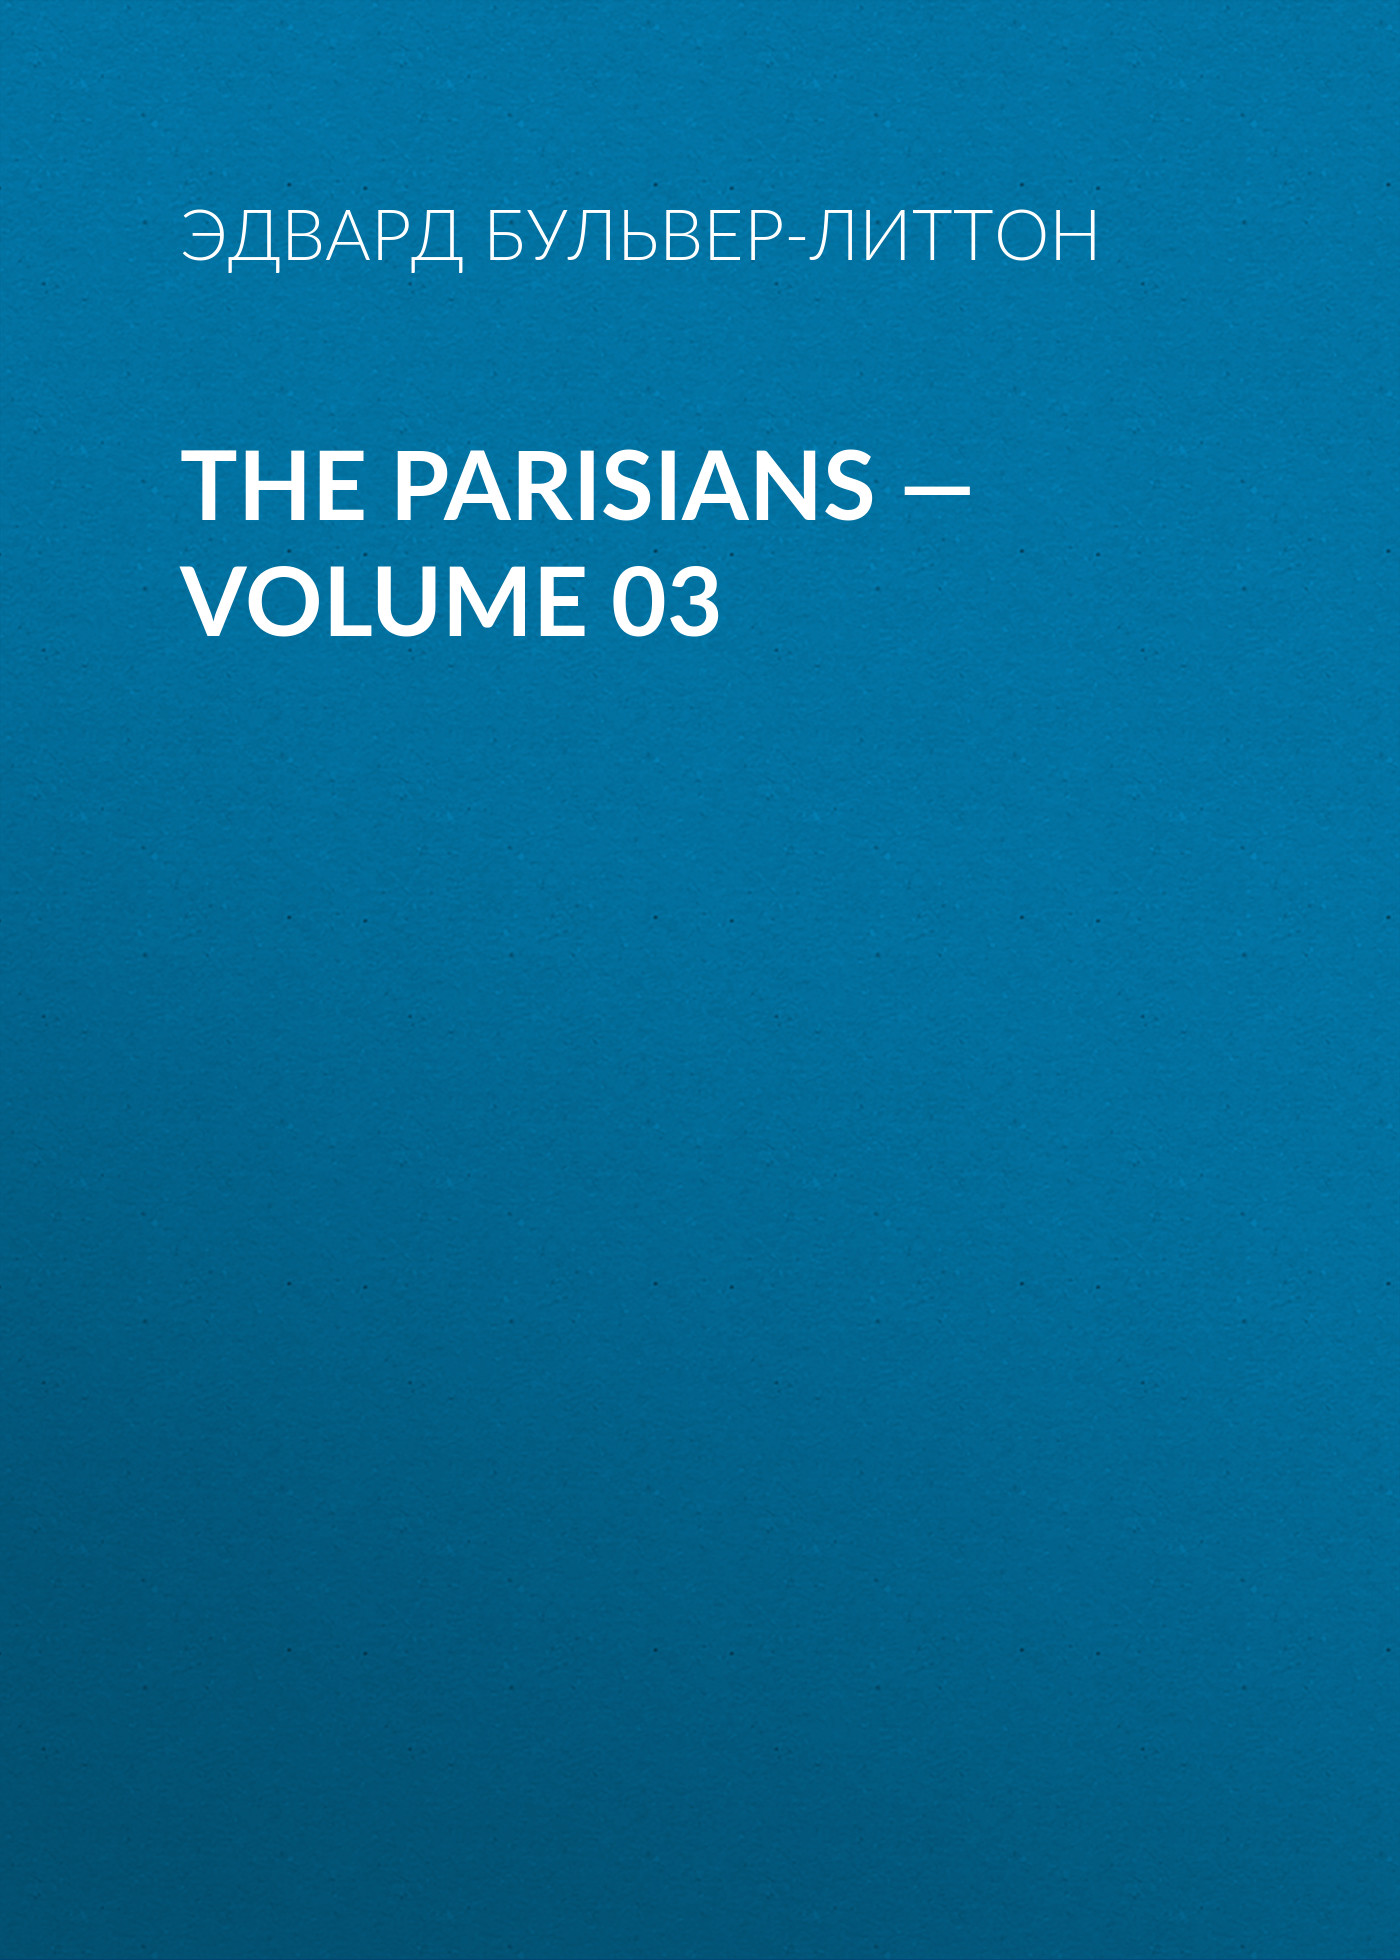 The Parisians — Volume 03